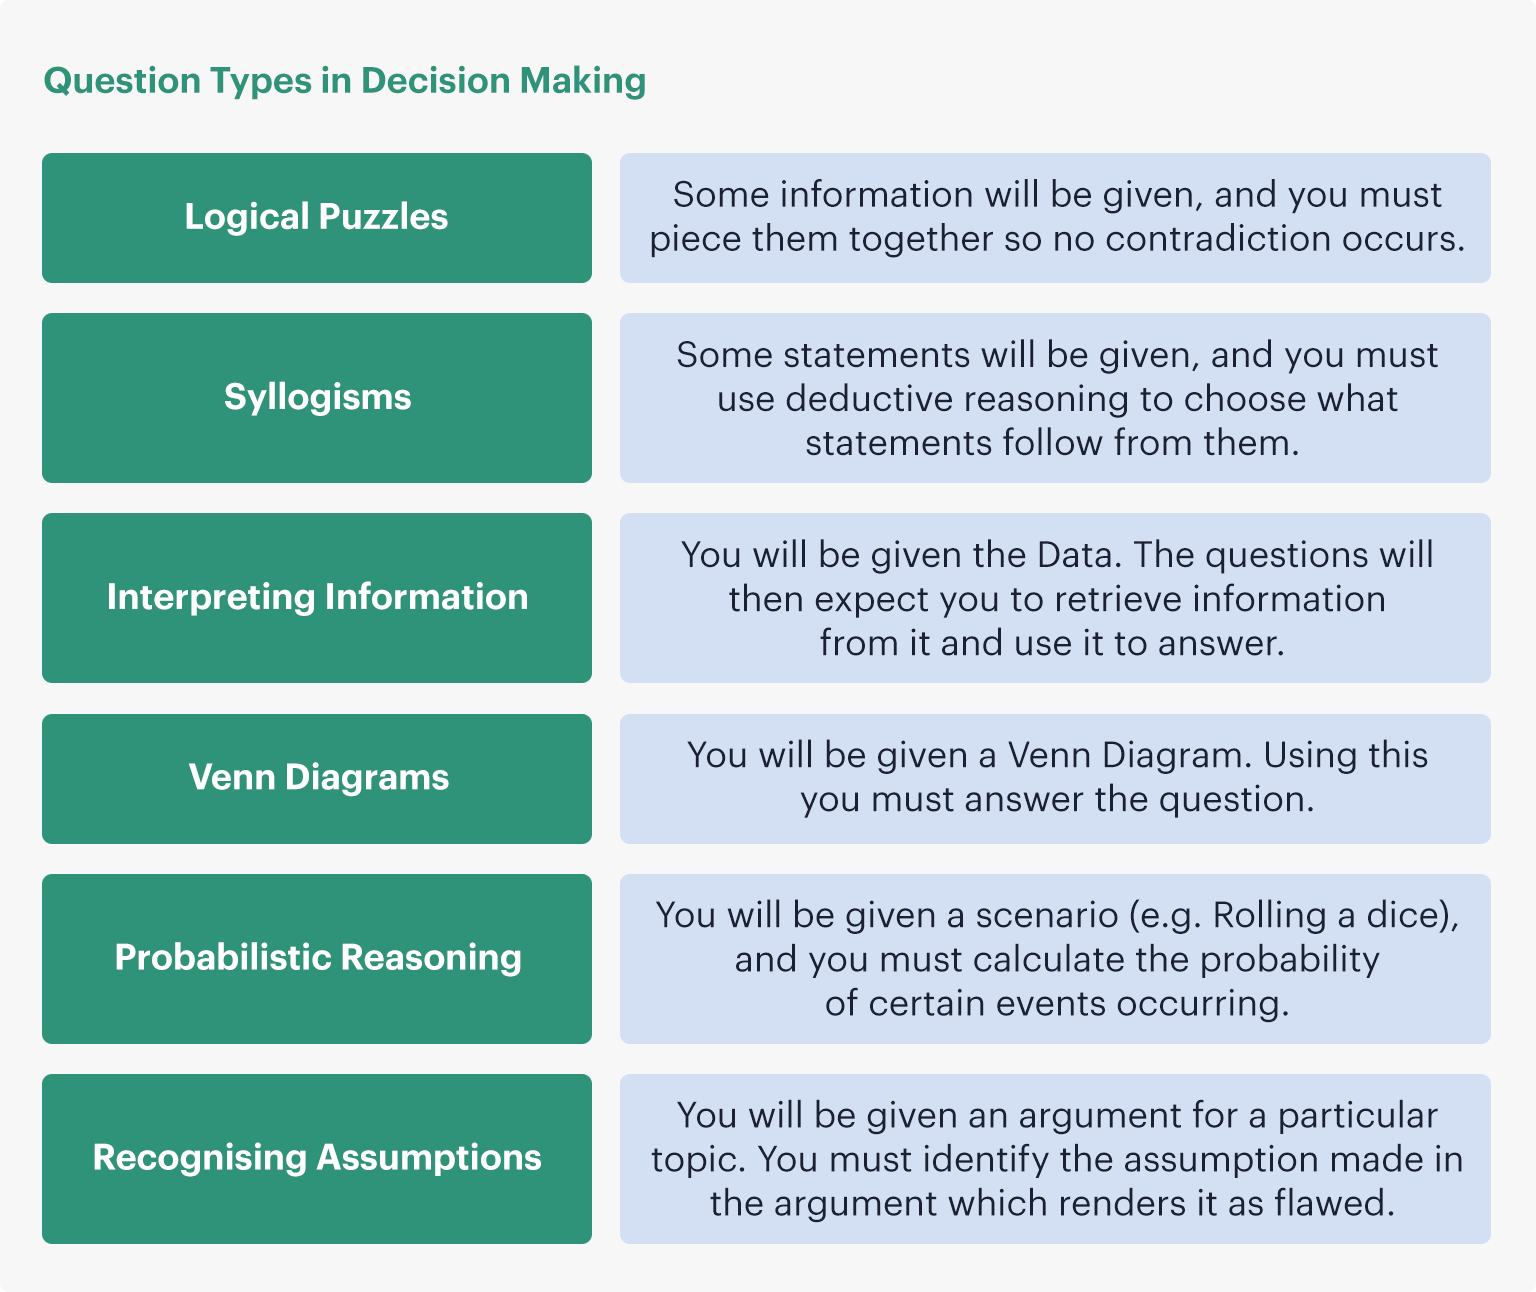 Question types in UCAT Decision Making: Logical Puzzles, Syllogisms, Interpreting Information, Venn Diagrams, Probabilistic Reasoning, Recognising Assumptions